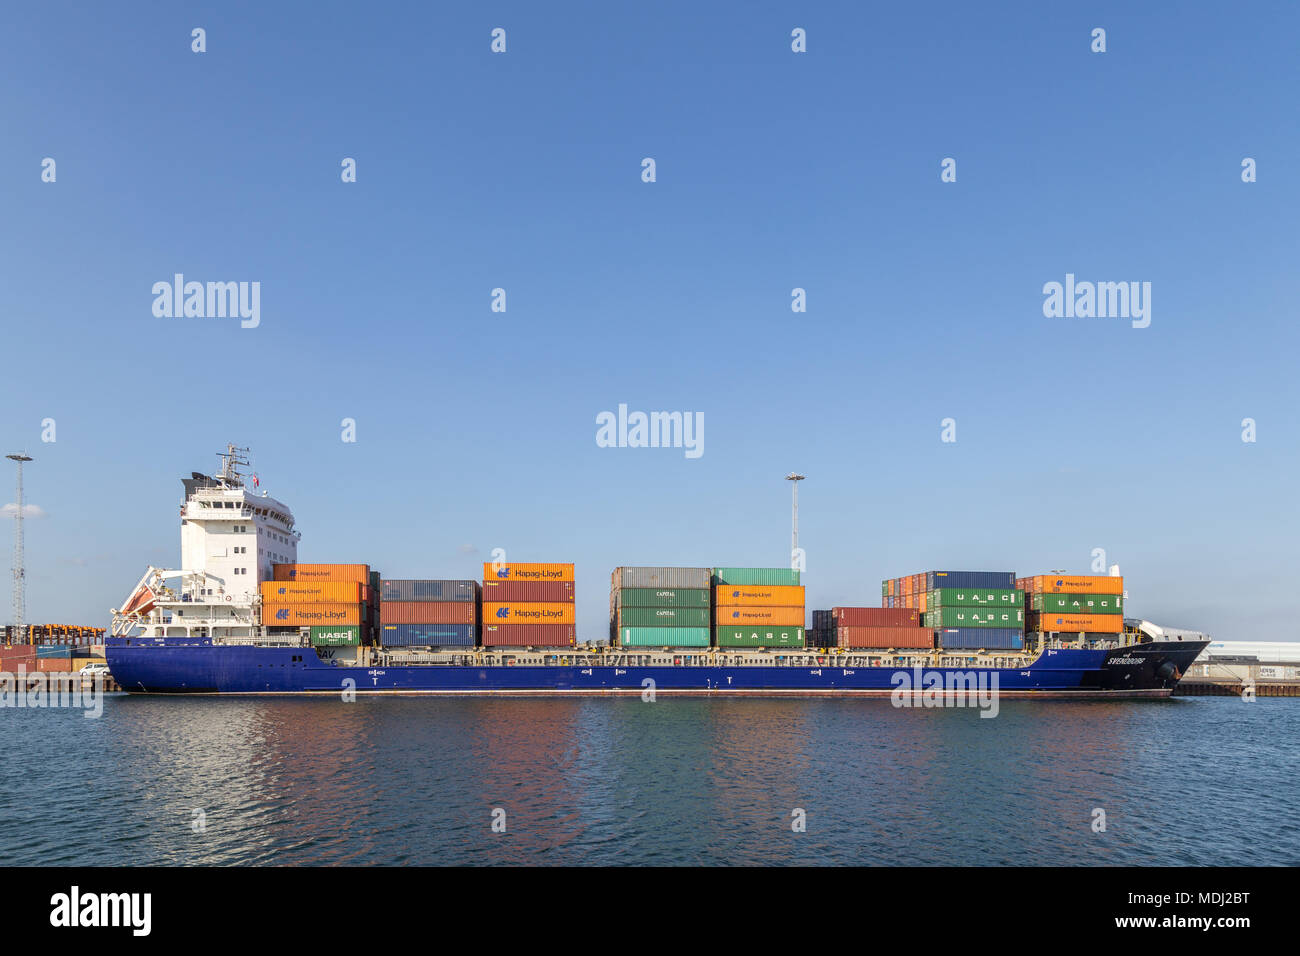 Container ship side view - Stock Image